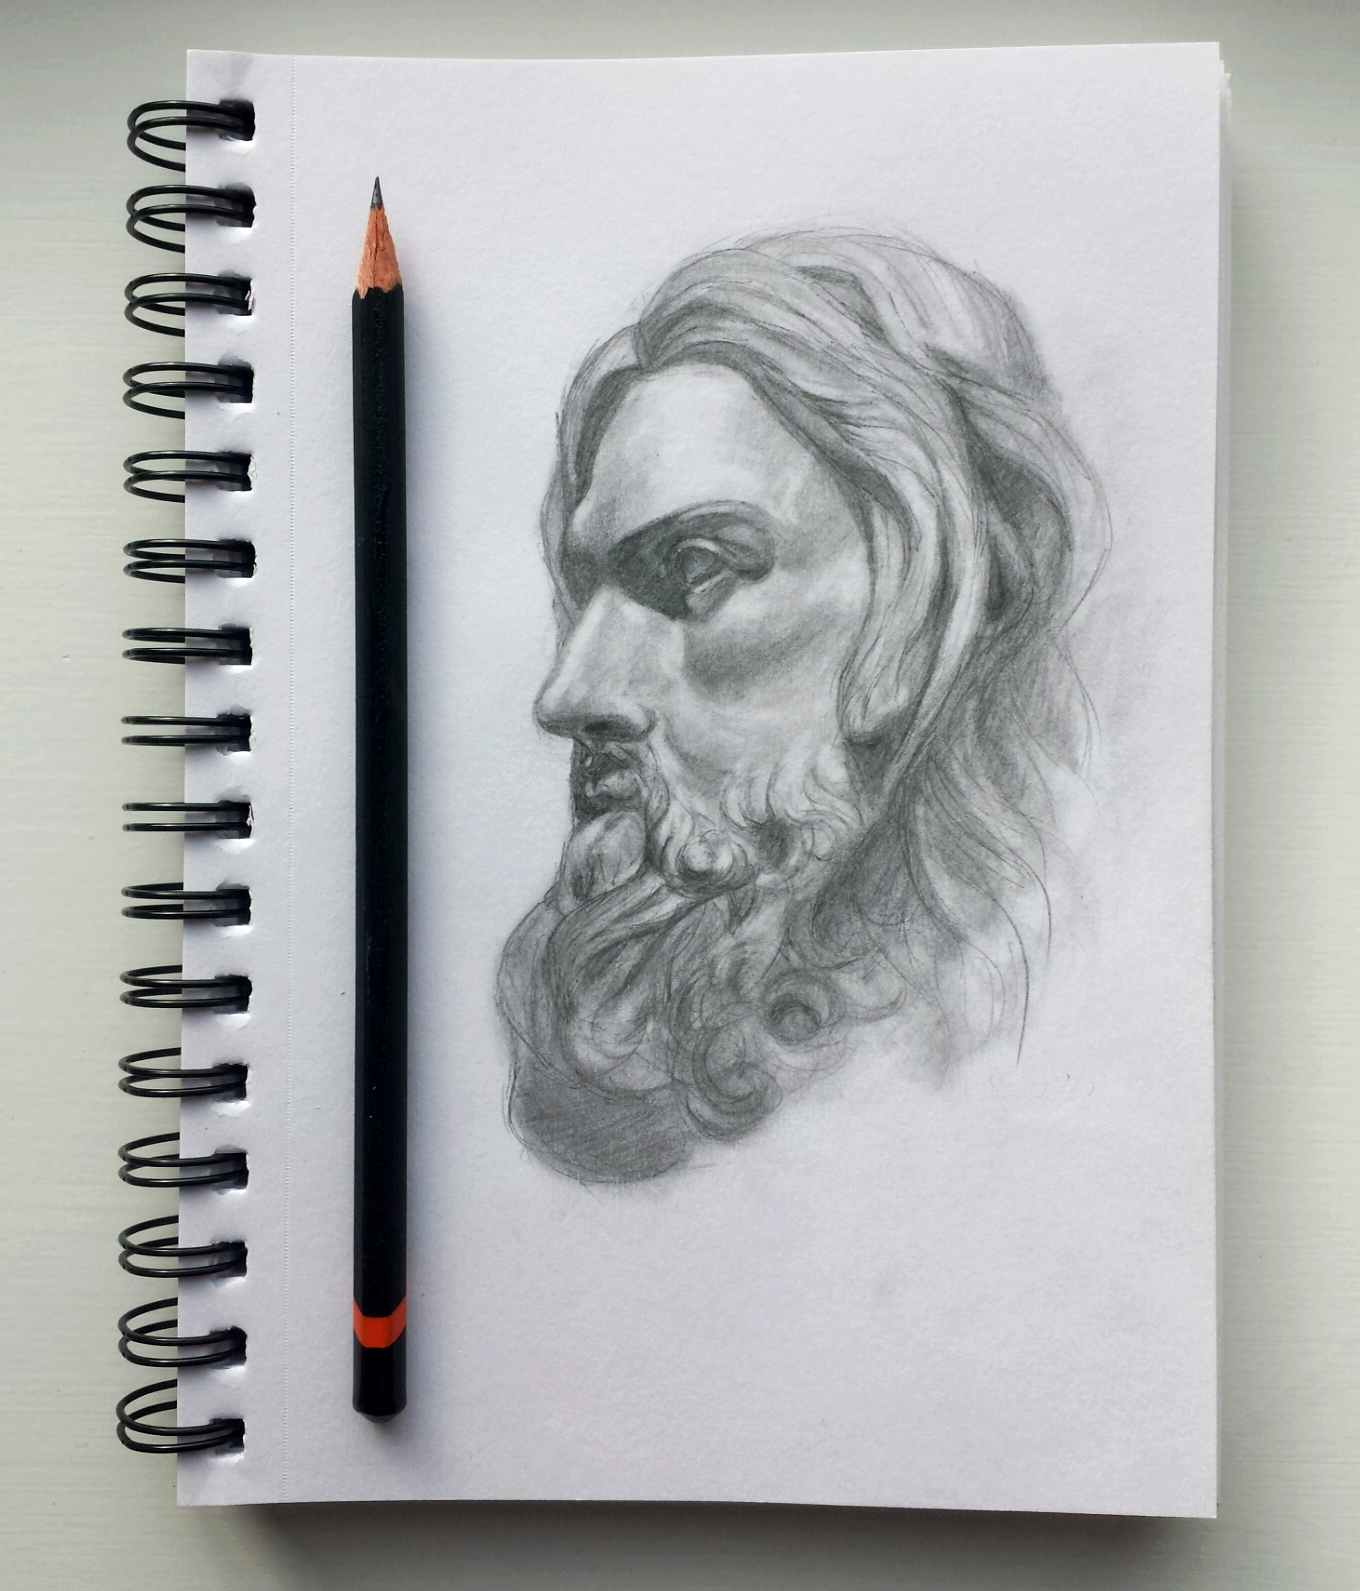 Small pencil sketch of a jesus statue